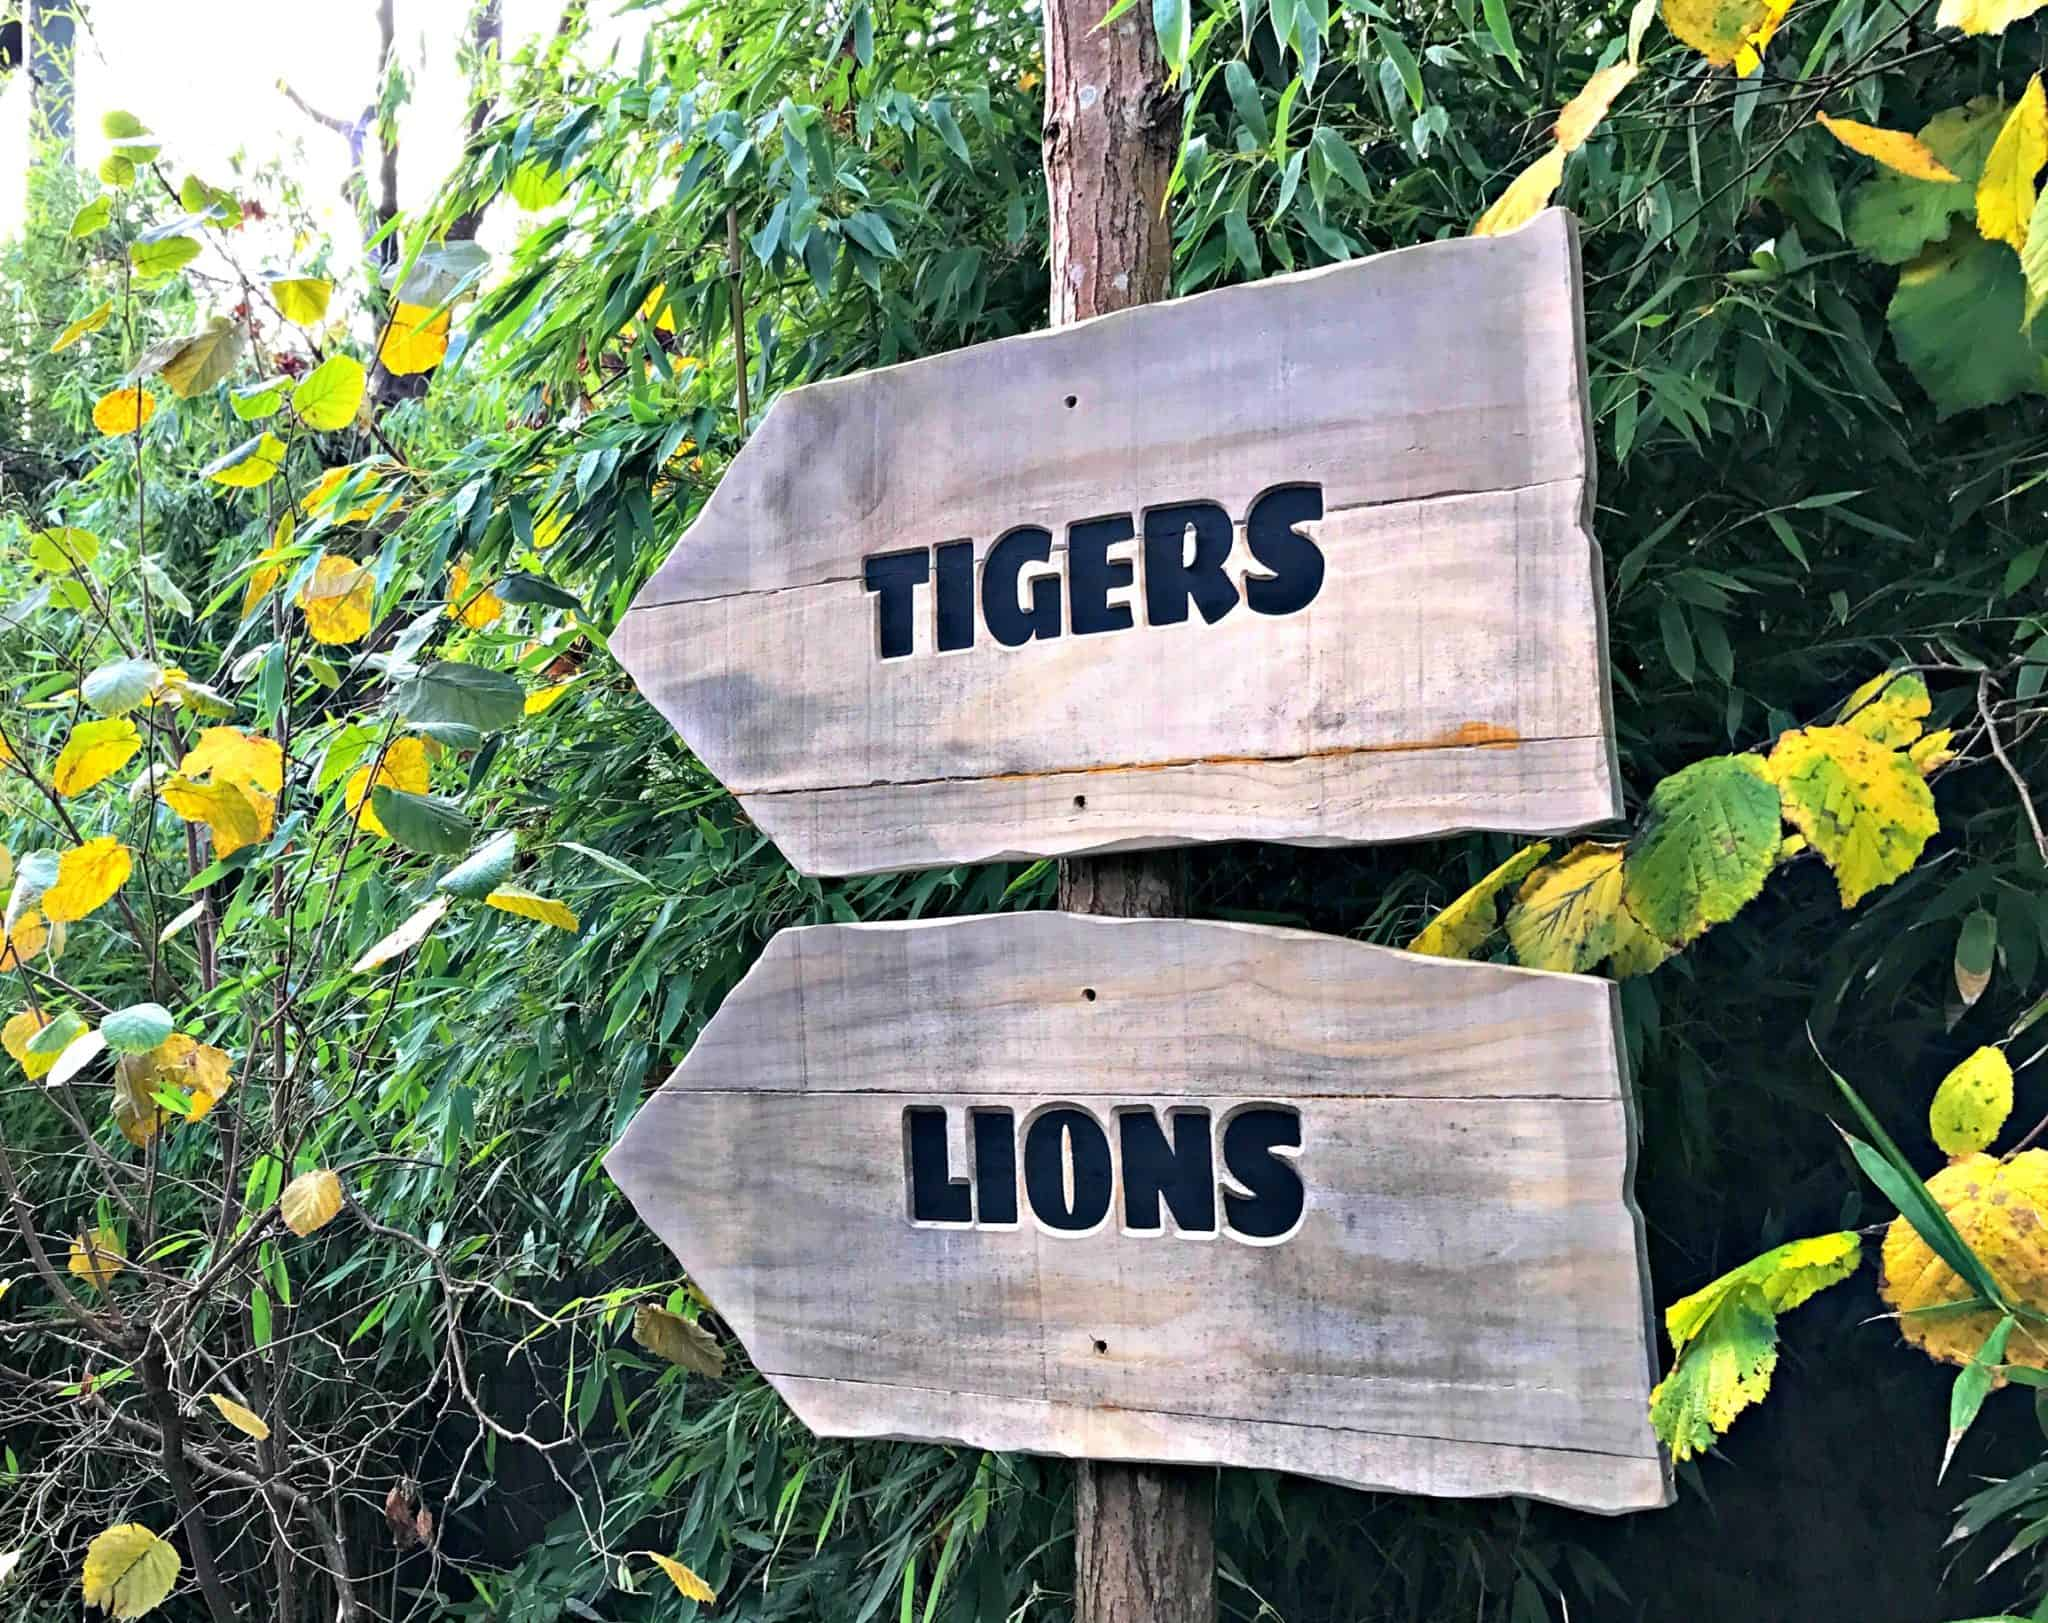 Taking The Winter's Trail at Chessington World of Adventures